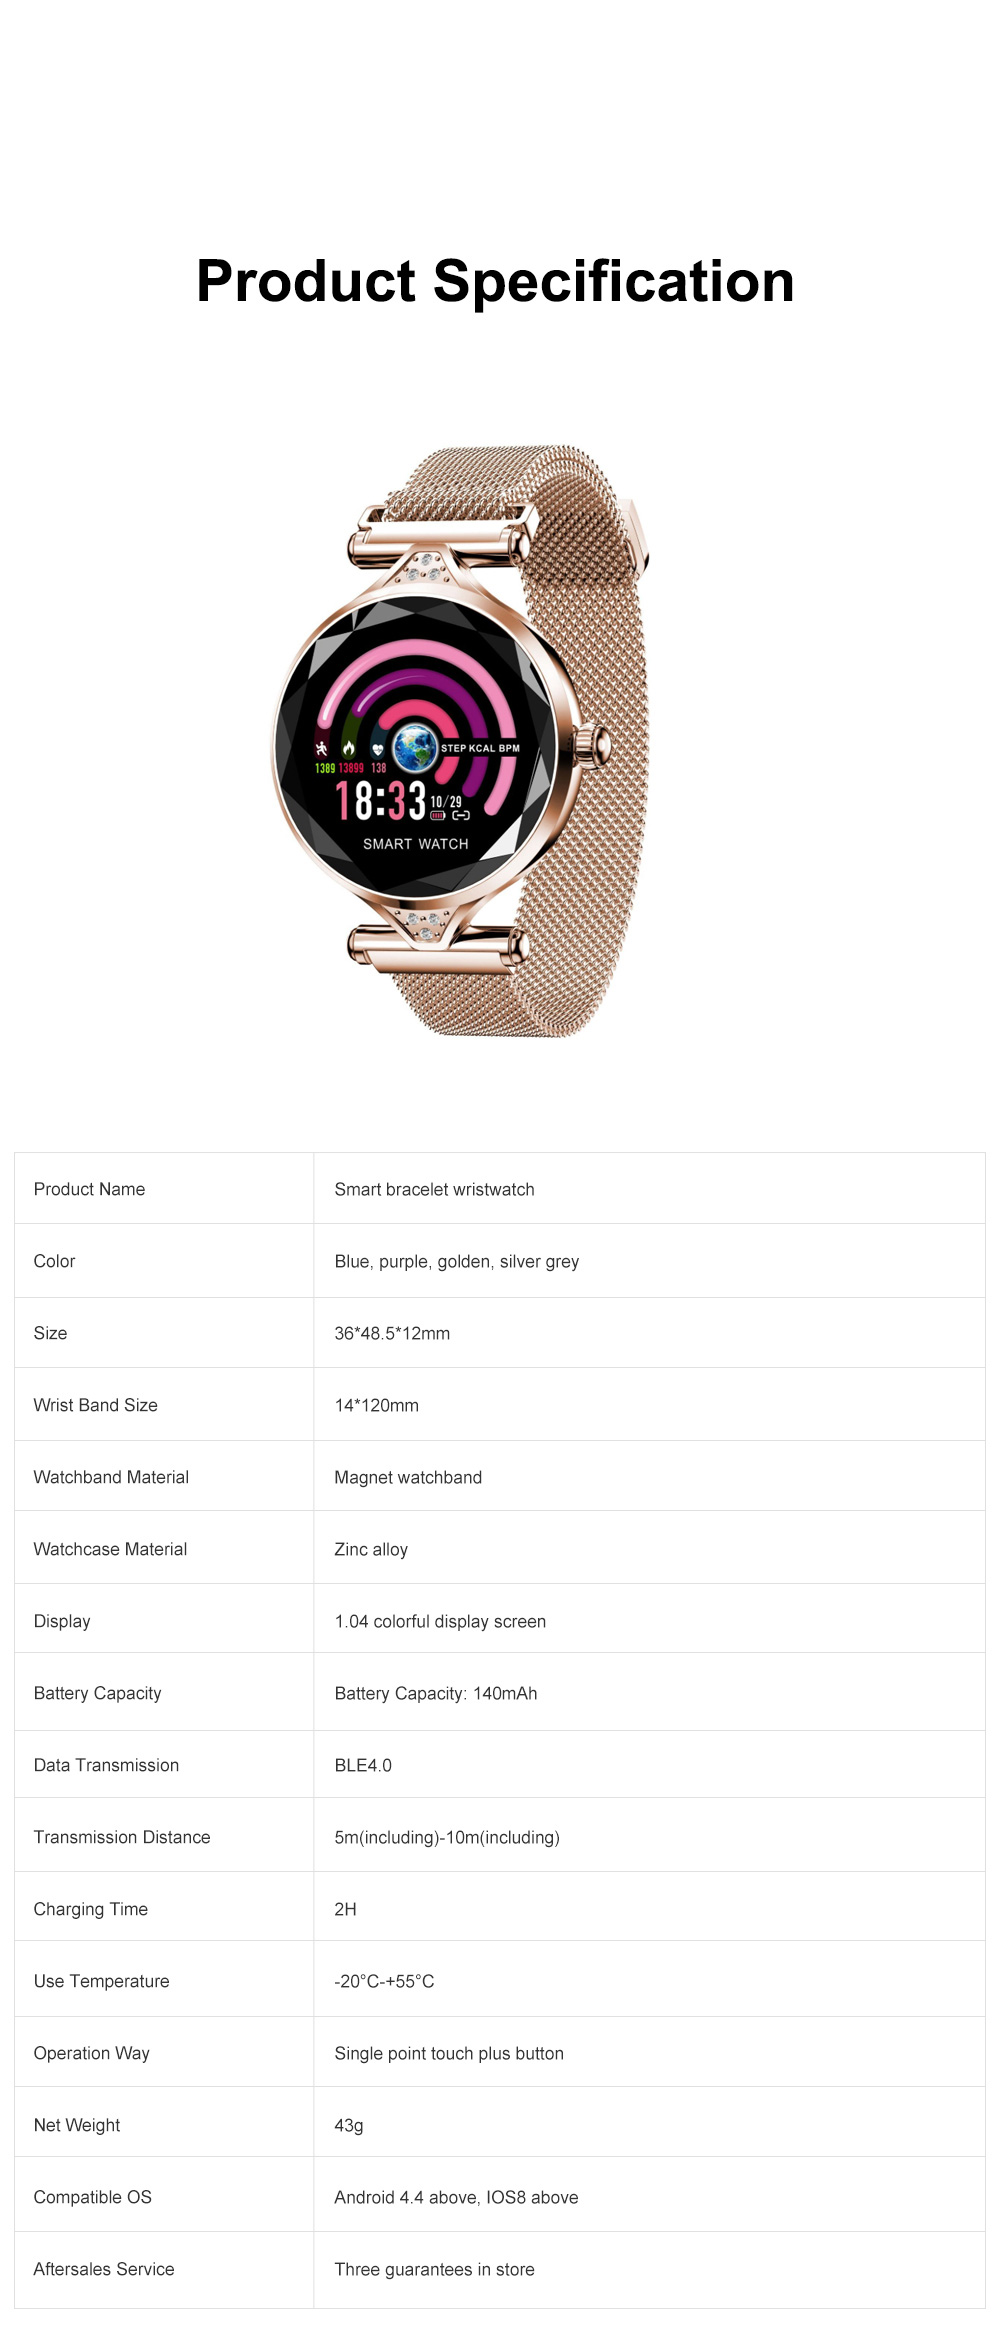 Multifunctional Smart Wrist Watch for Women Daily Wear Fashionable and Smart Bracelet Bluetooth Colorful Screen Wristwatch 12